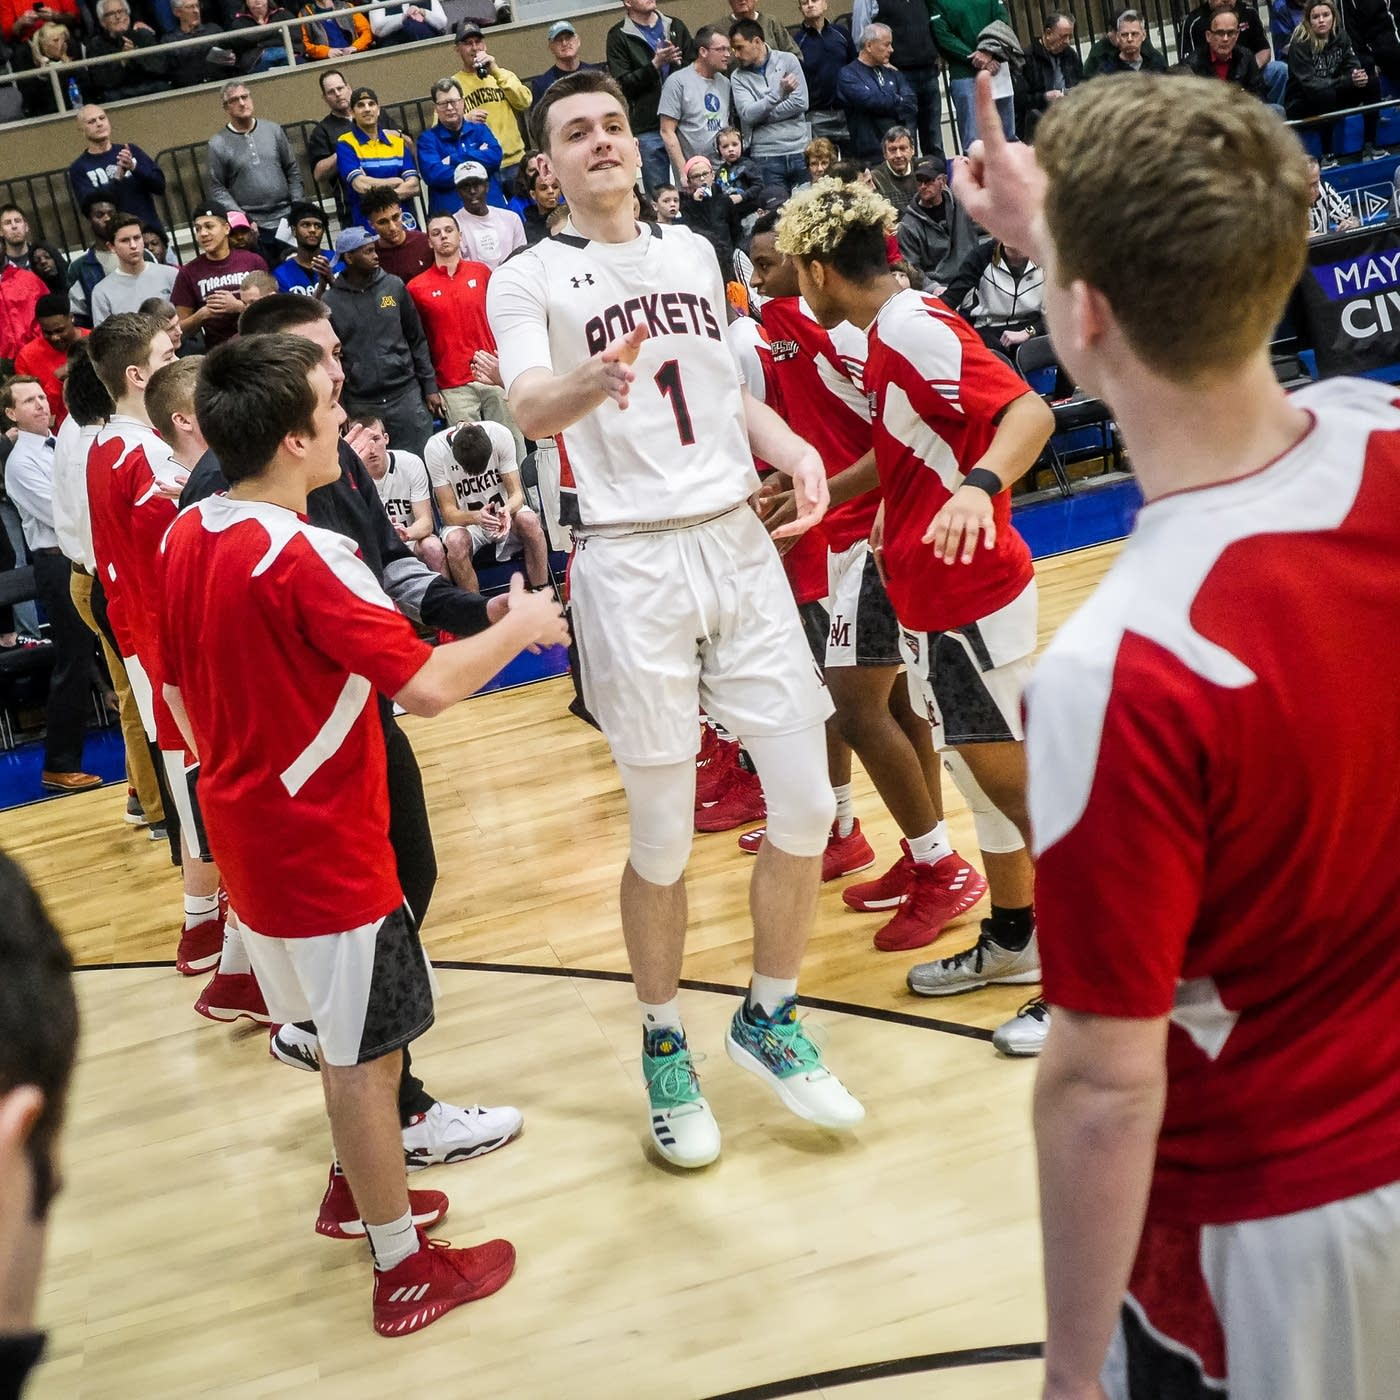 Rochester basketball phenom weighing offers from top programs | MPR News